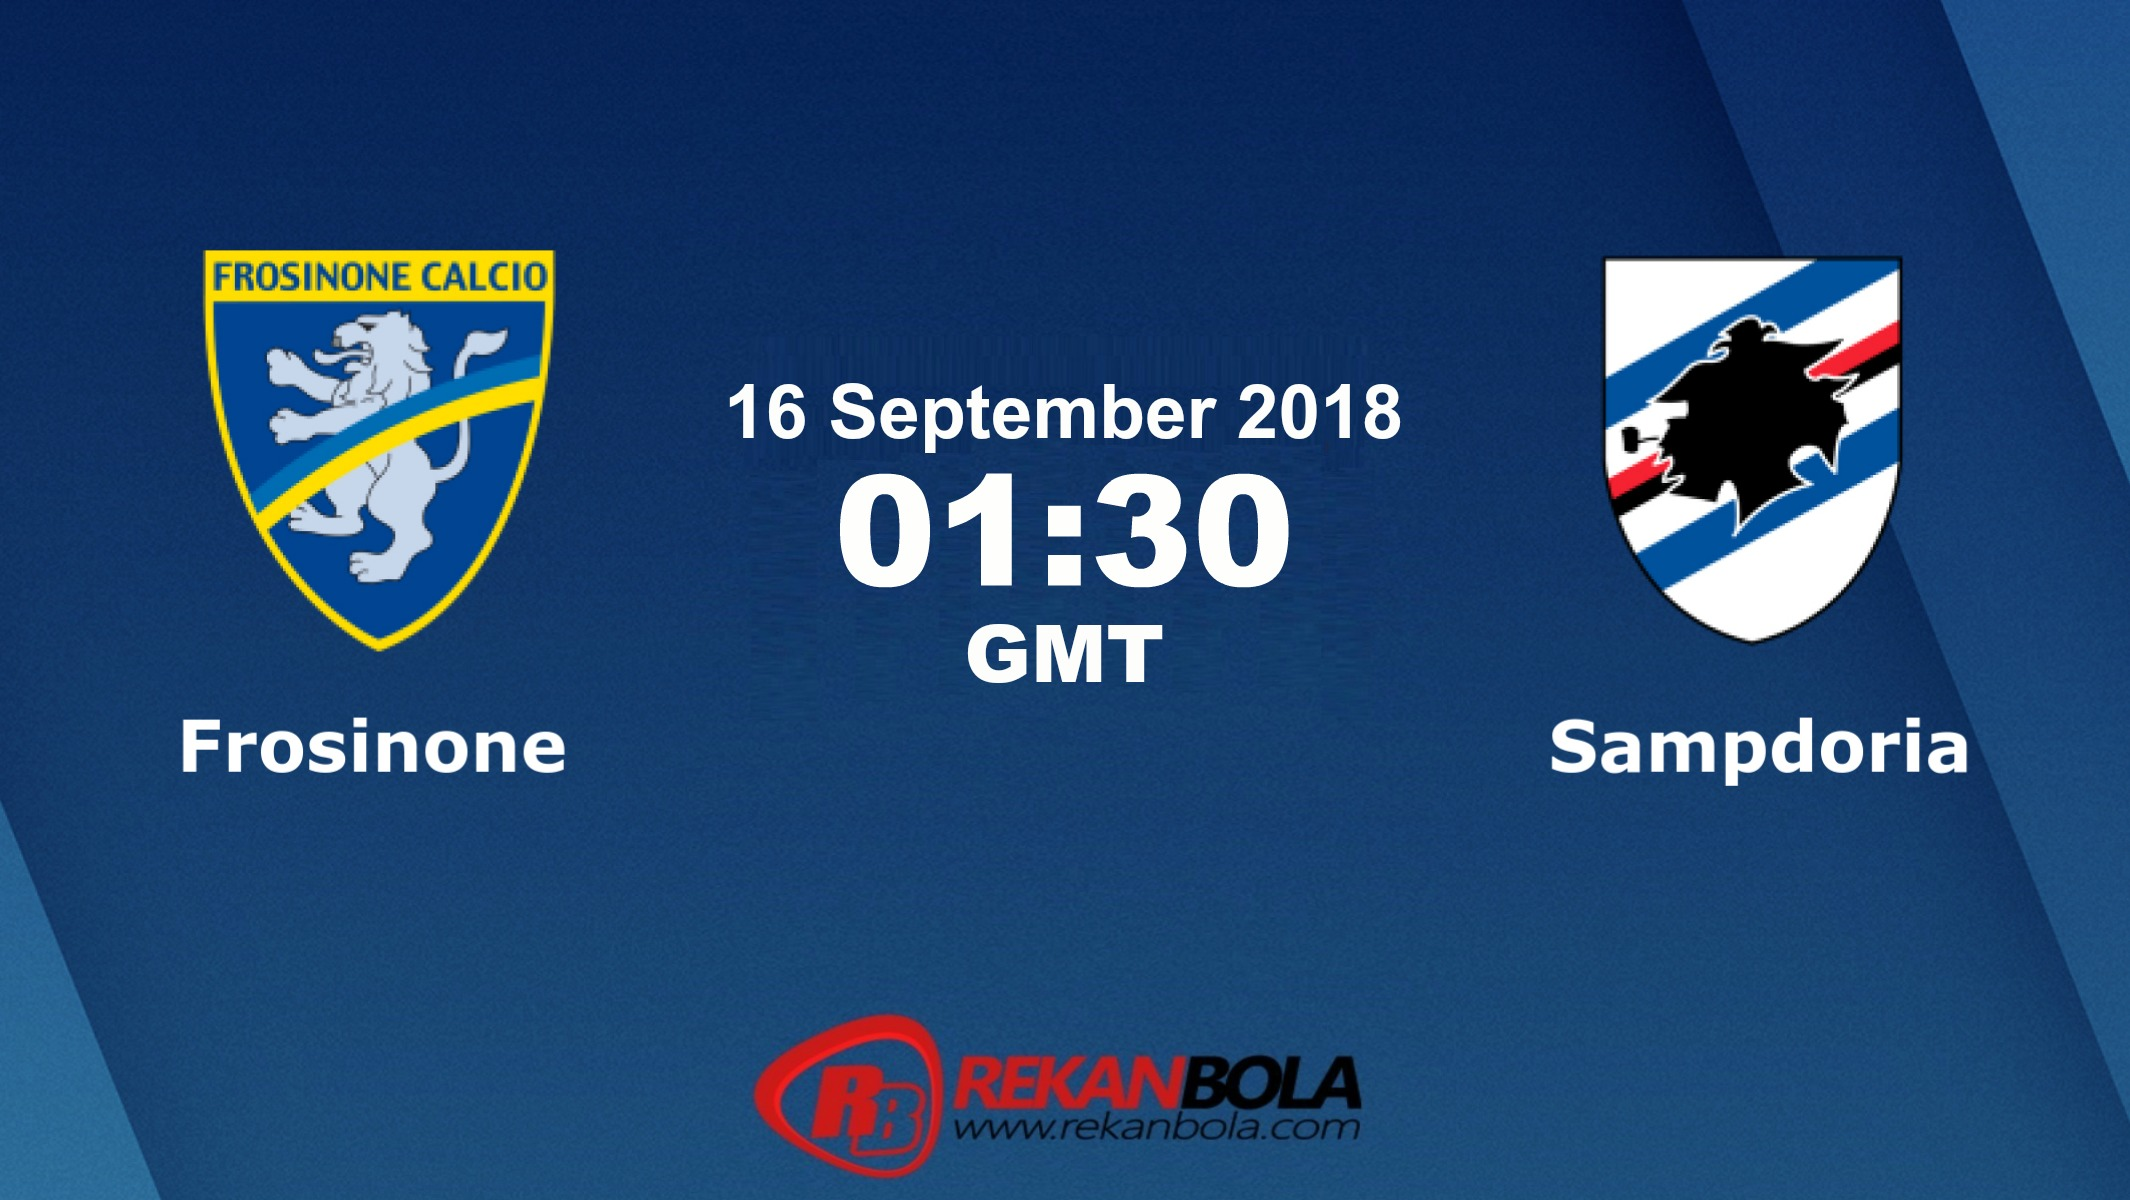 Nonton Siaran Live Streaming Frosinone Vs Sampdoria 16 September 2018